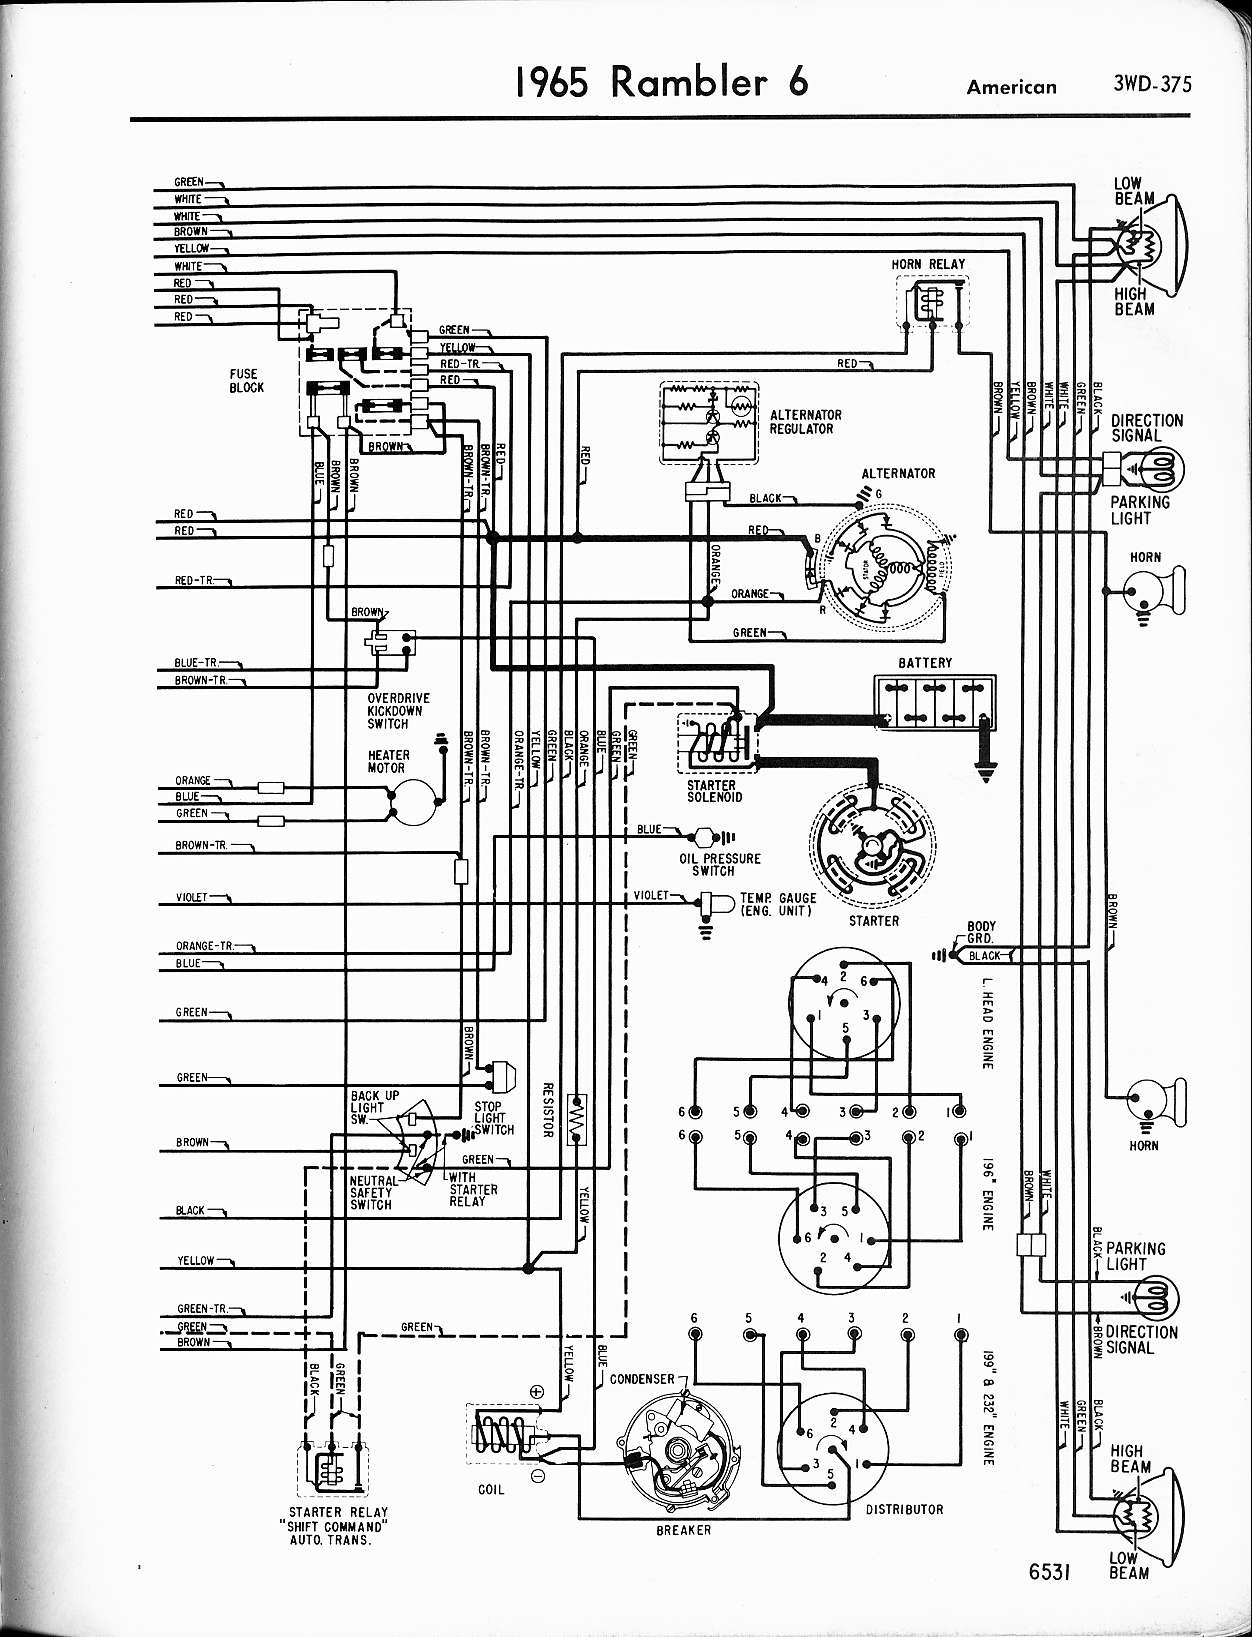 2008 Holiday Rambler Wiring Diagram from www.oldcarmanualproject.com